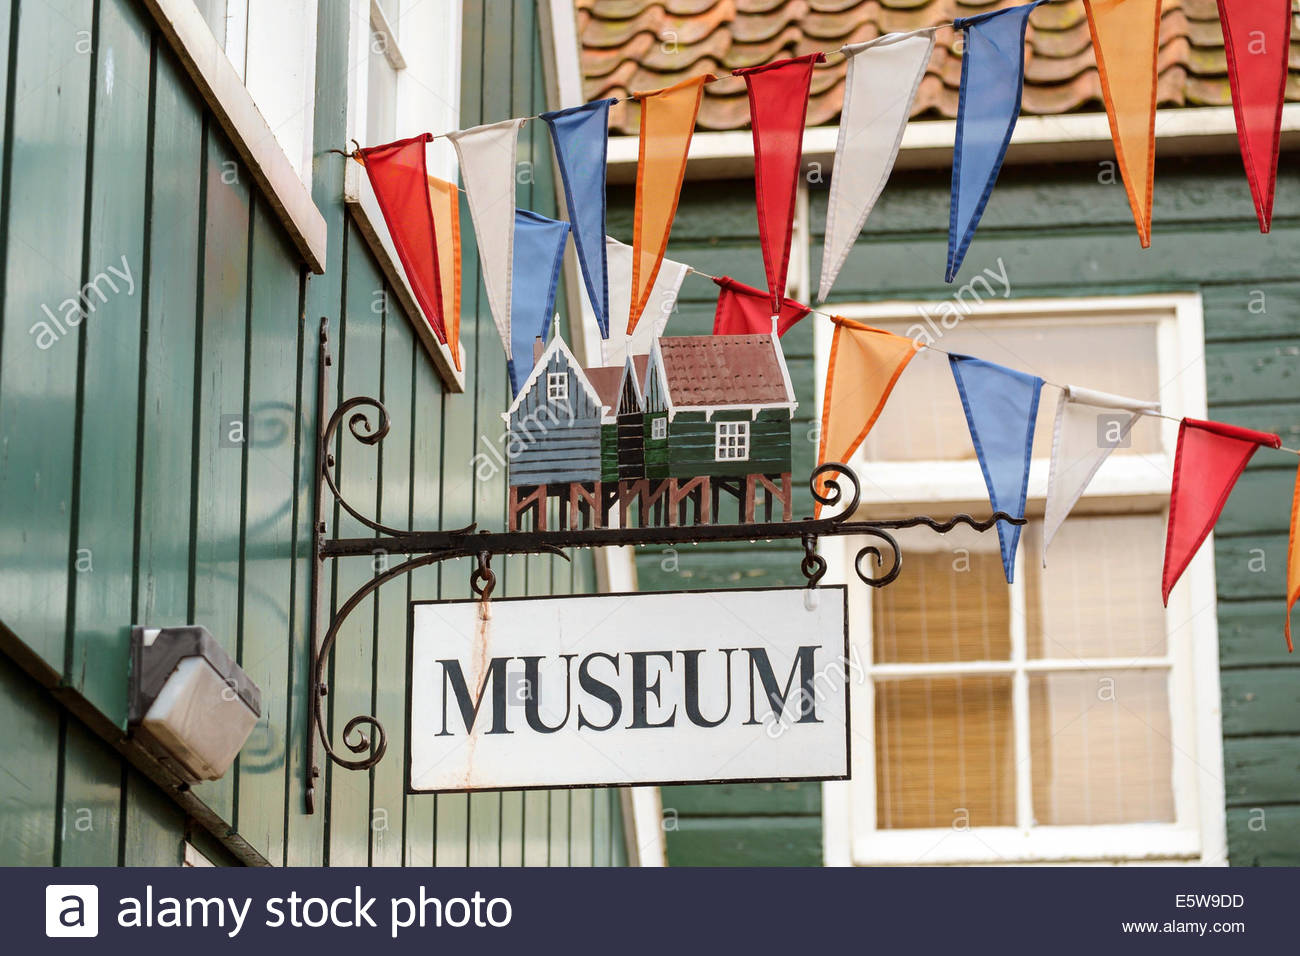 Museum sign and flags of Dutch national colors on building exterior, Marken, North Holland, Netherlands - Stock Image